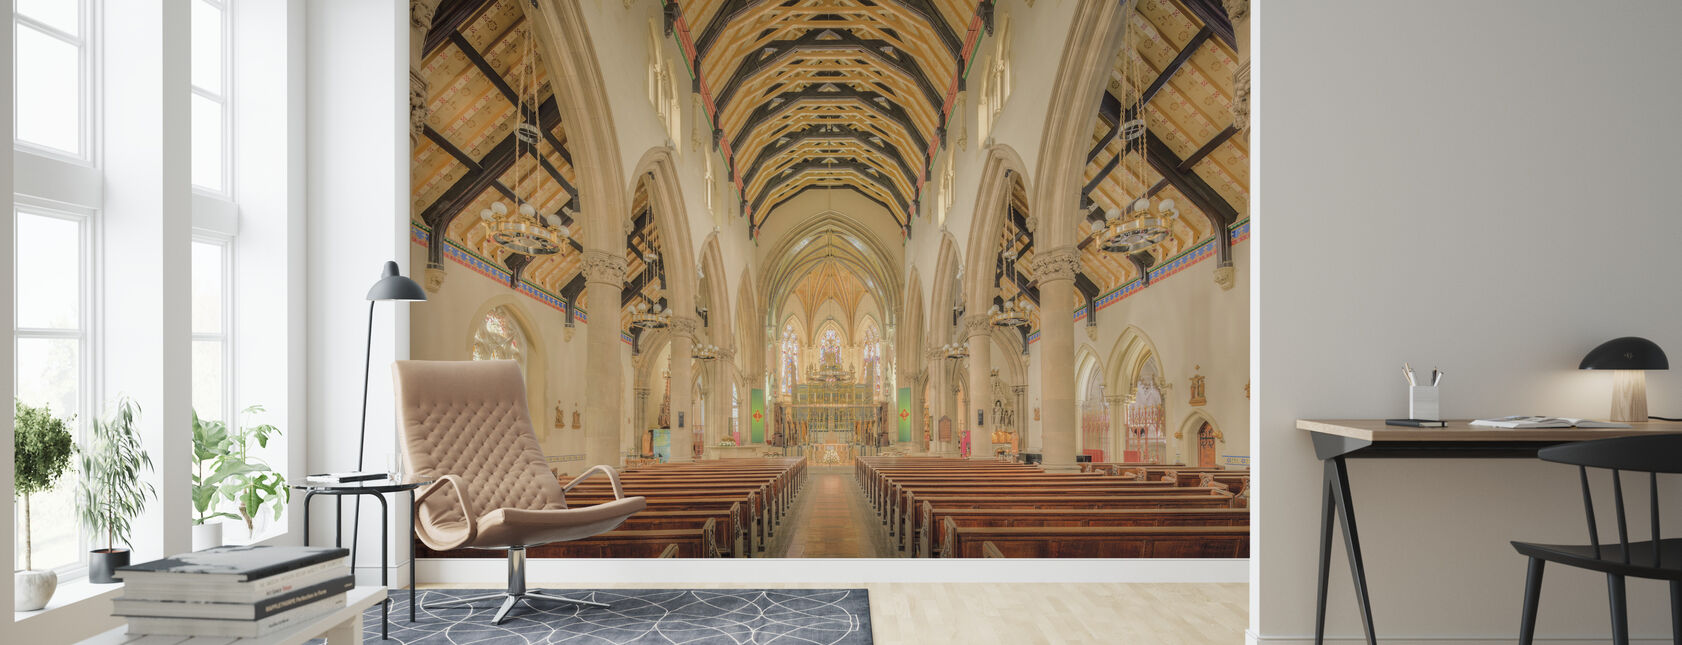 Sacred Catherdral Church - Wallpaper - Living Room